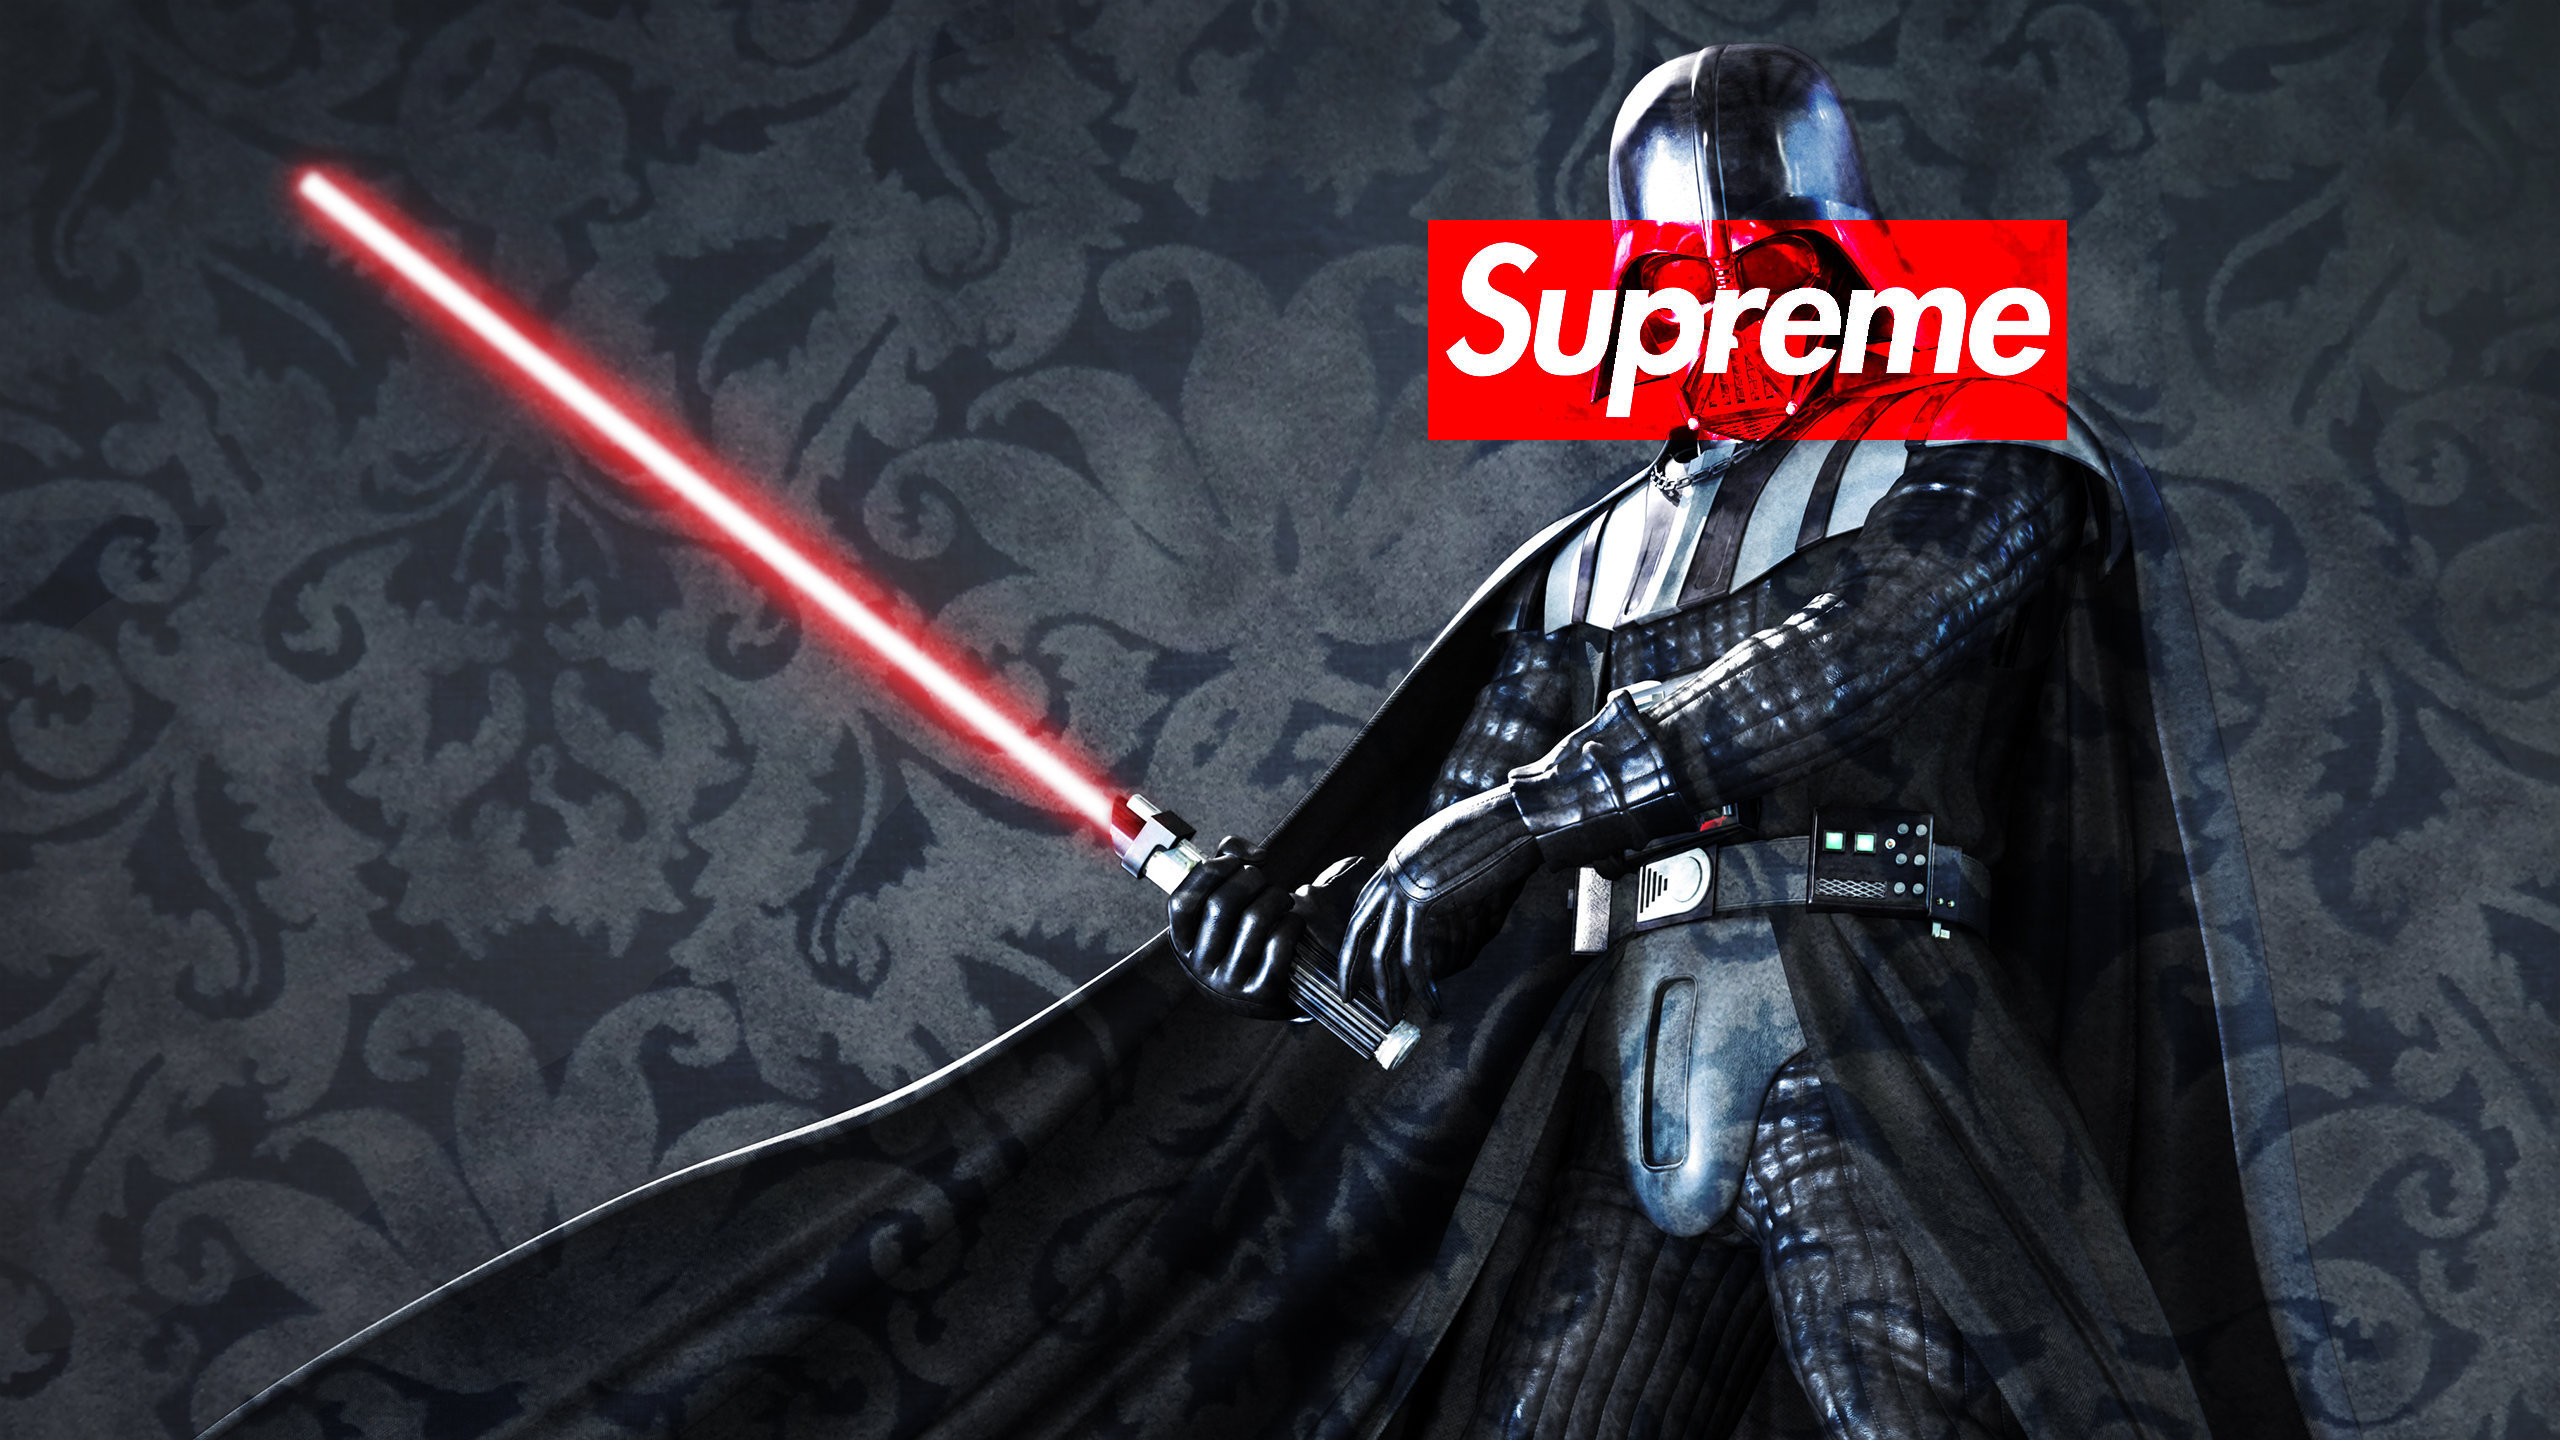 Download the Darth Vader Supreme wallpaper below for your mobile device  (Android phones, iPhone etc.)